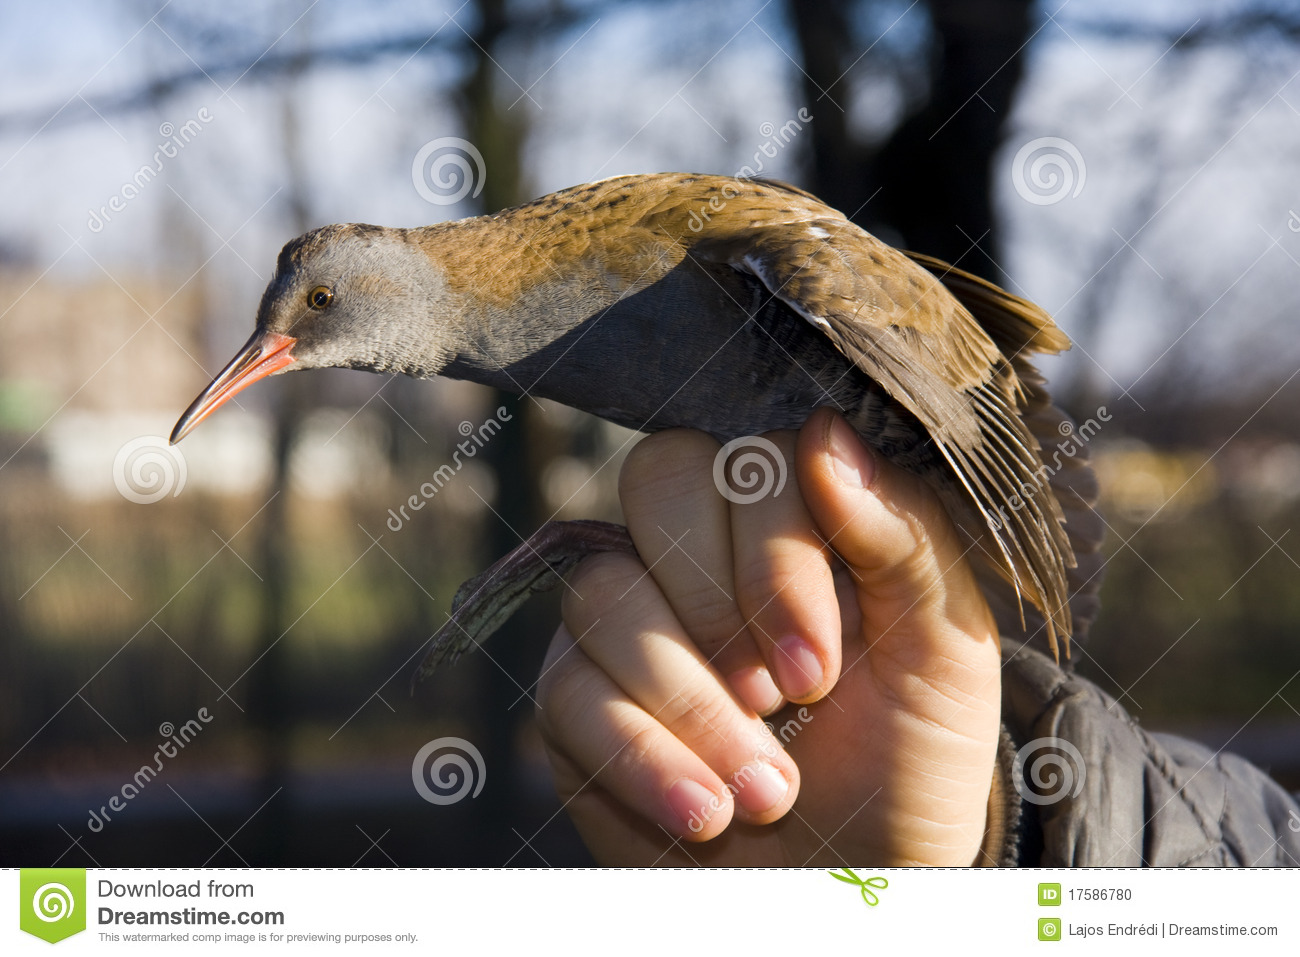 Water rail (Rallus aquaticus) in hand